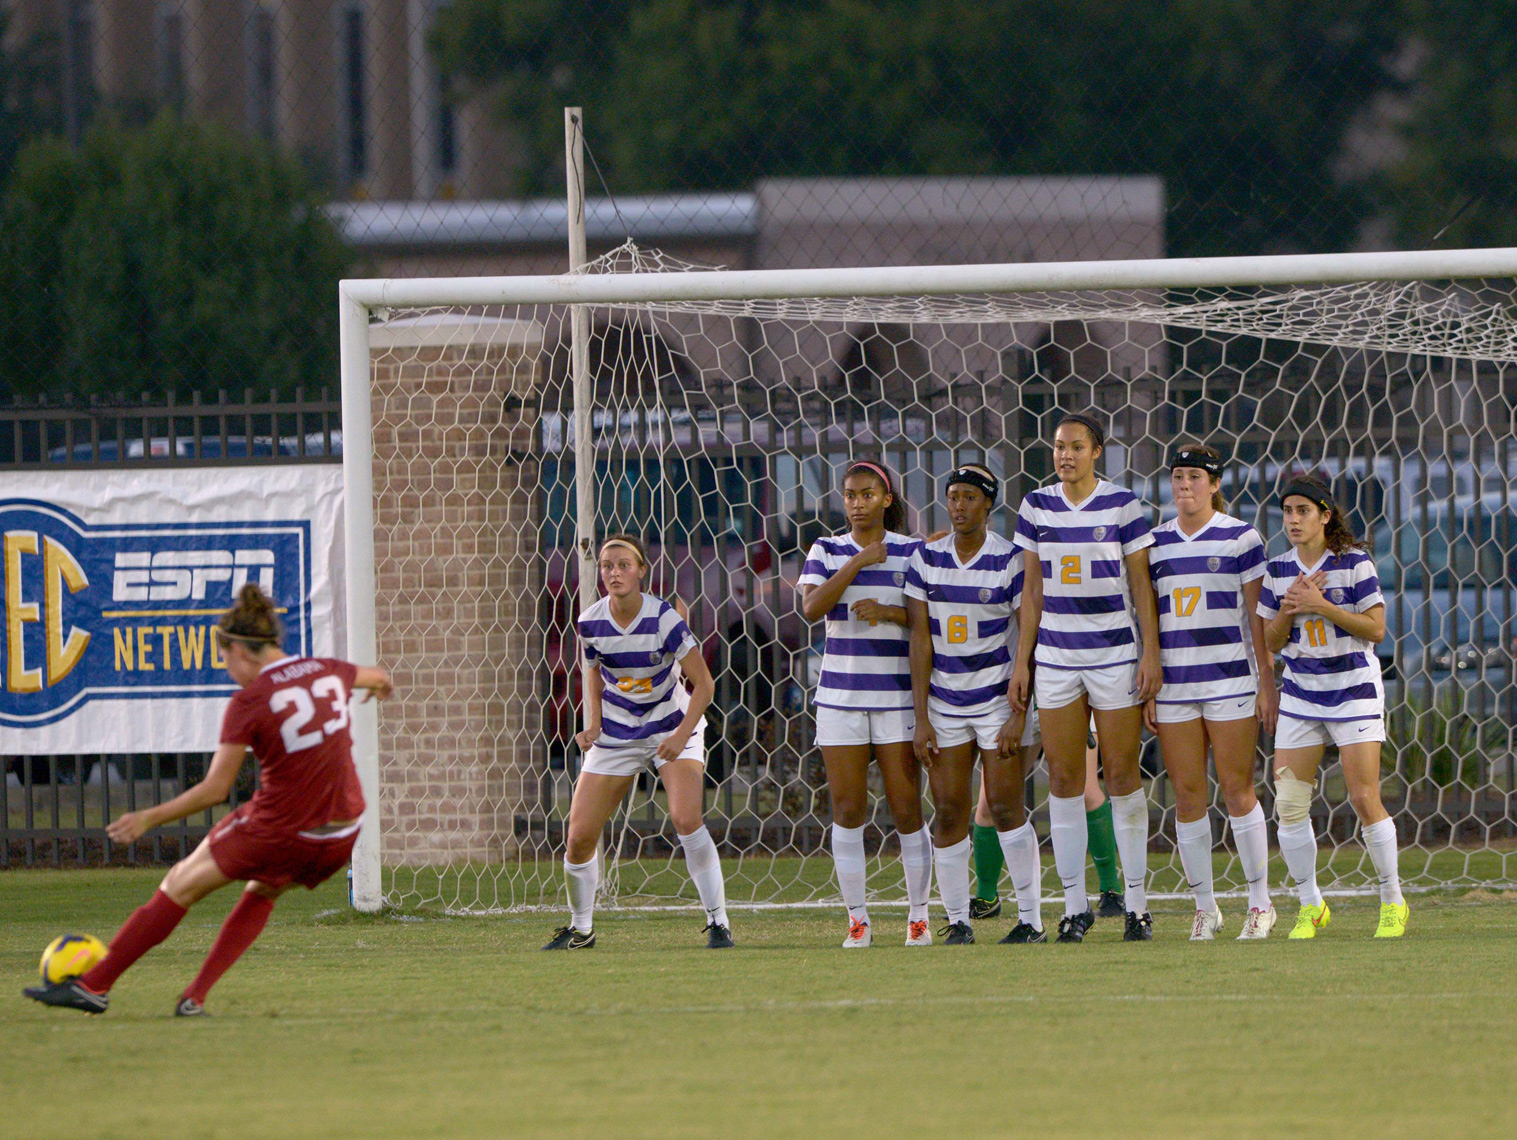 096_PhotoFolio_LSU_Soccer_vs_Alabama_JF_04